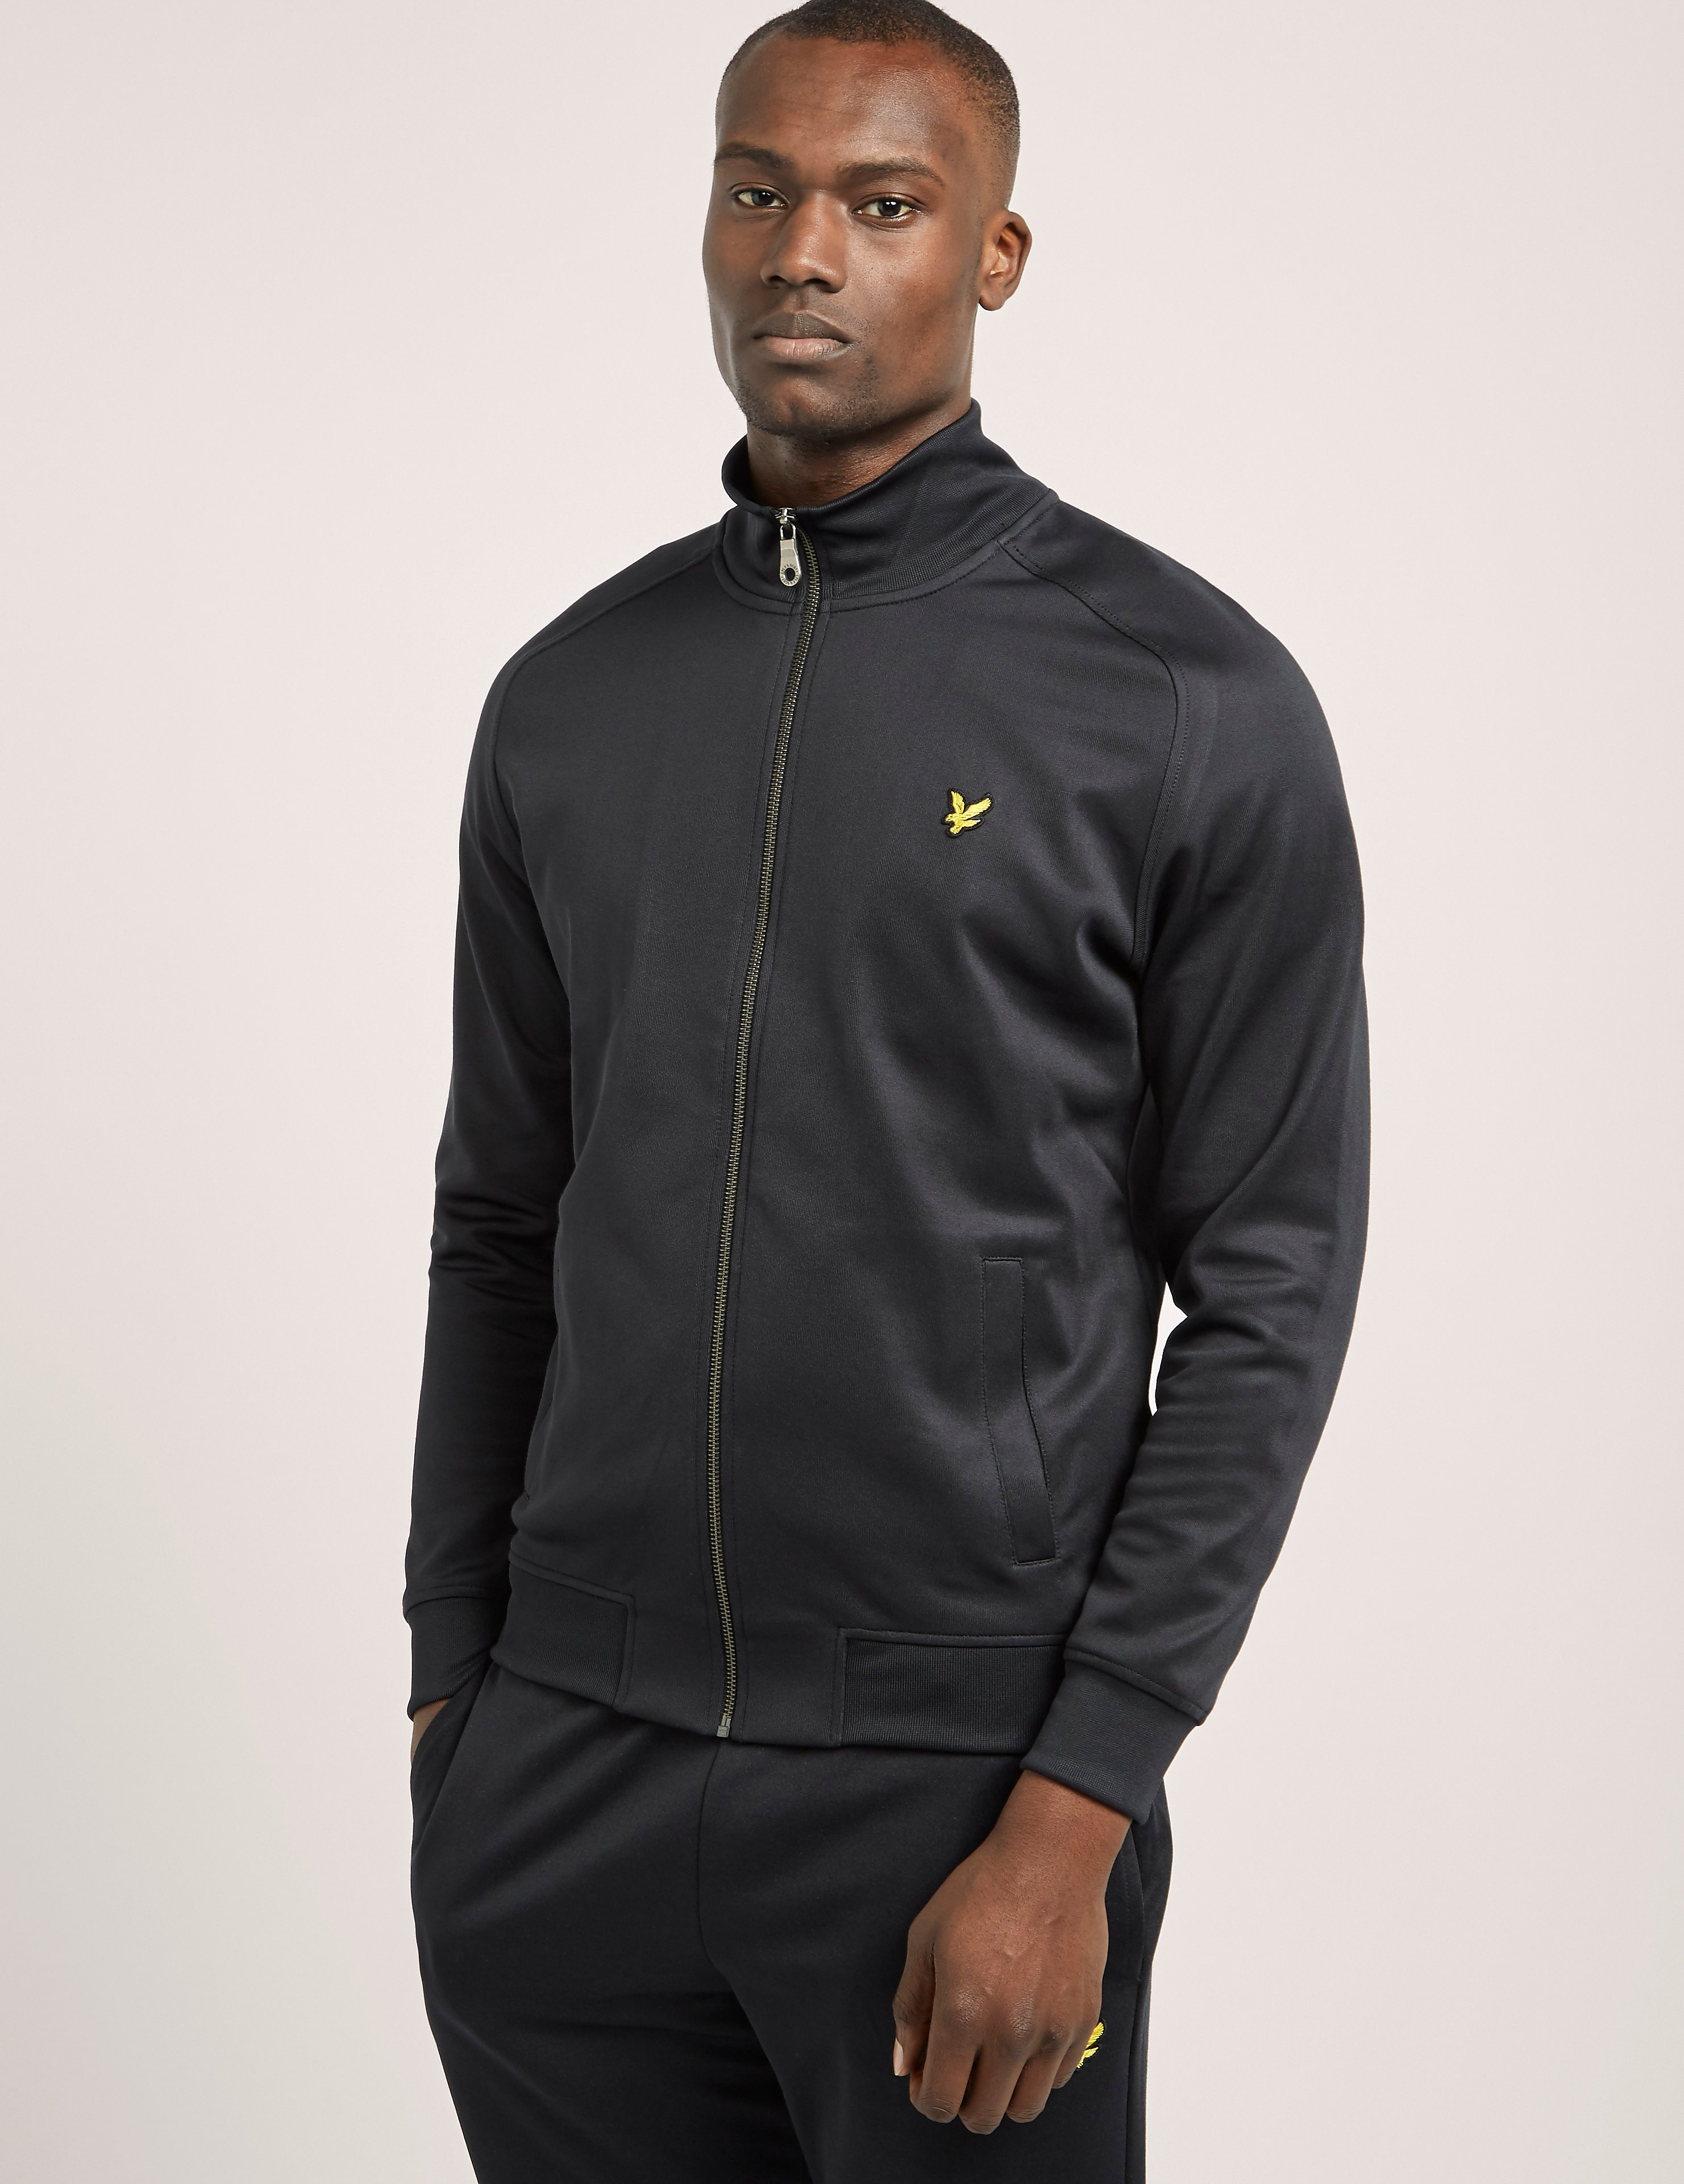 Lyle & Scott Tricot Funnel Neck Track Top